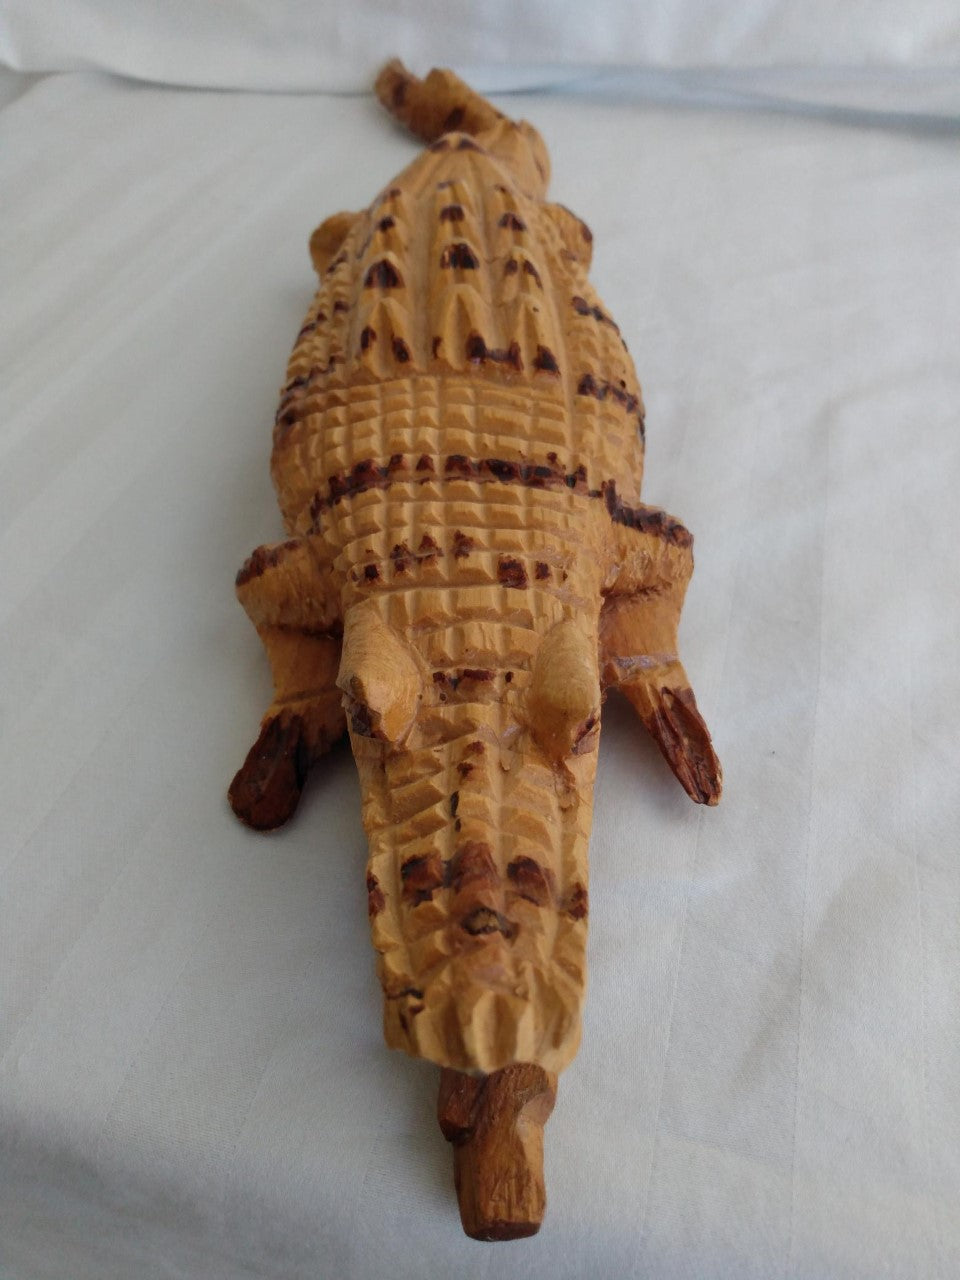 Hand Carved Wood Crocodilian Figurine Sculpture 20.25